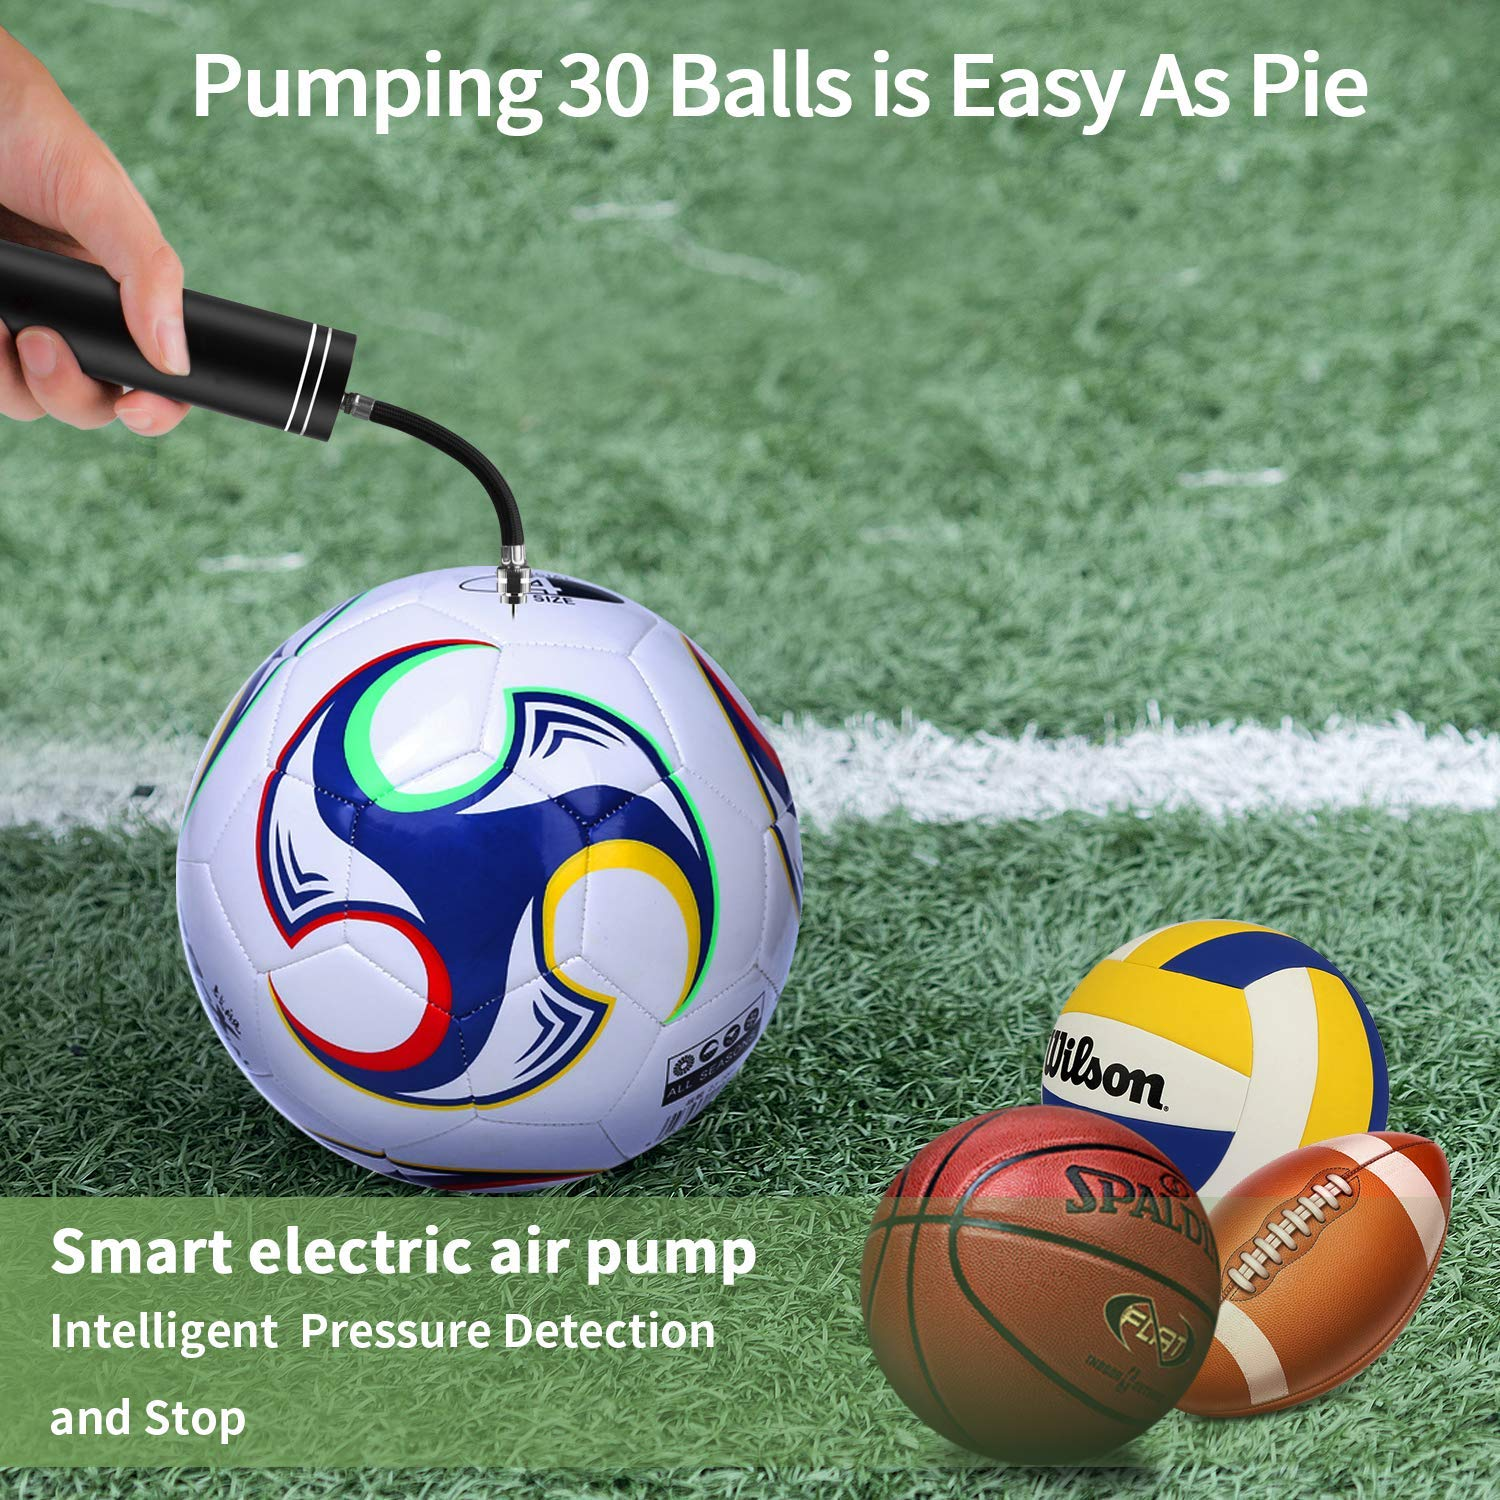 Automatic Morpilot Electric Fast Ball Pump with Needle and Nozzle - Air Pump for Inflatables, Athletic Basketball, Soccer, Volleyball, Football, Sport Ball and Swimming Ring - Faster Inflation - Porta